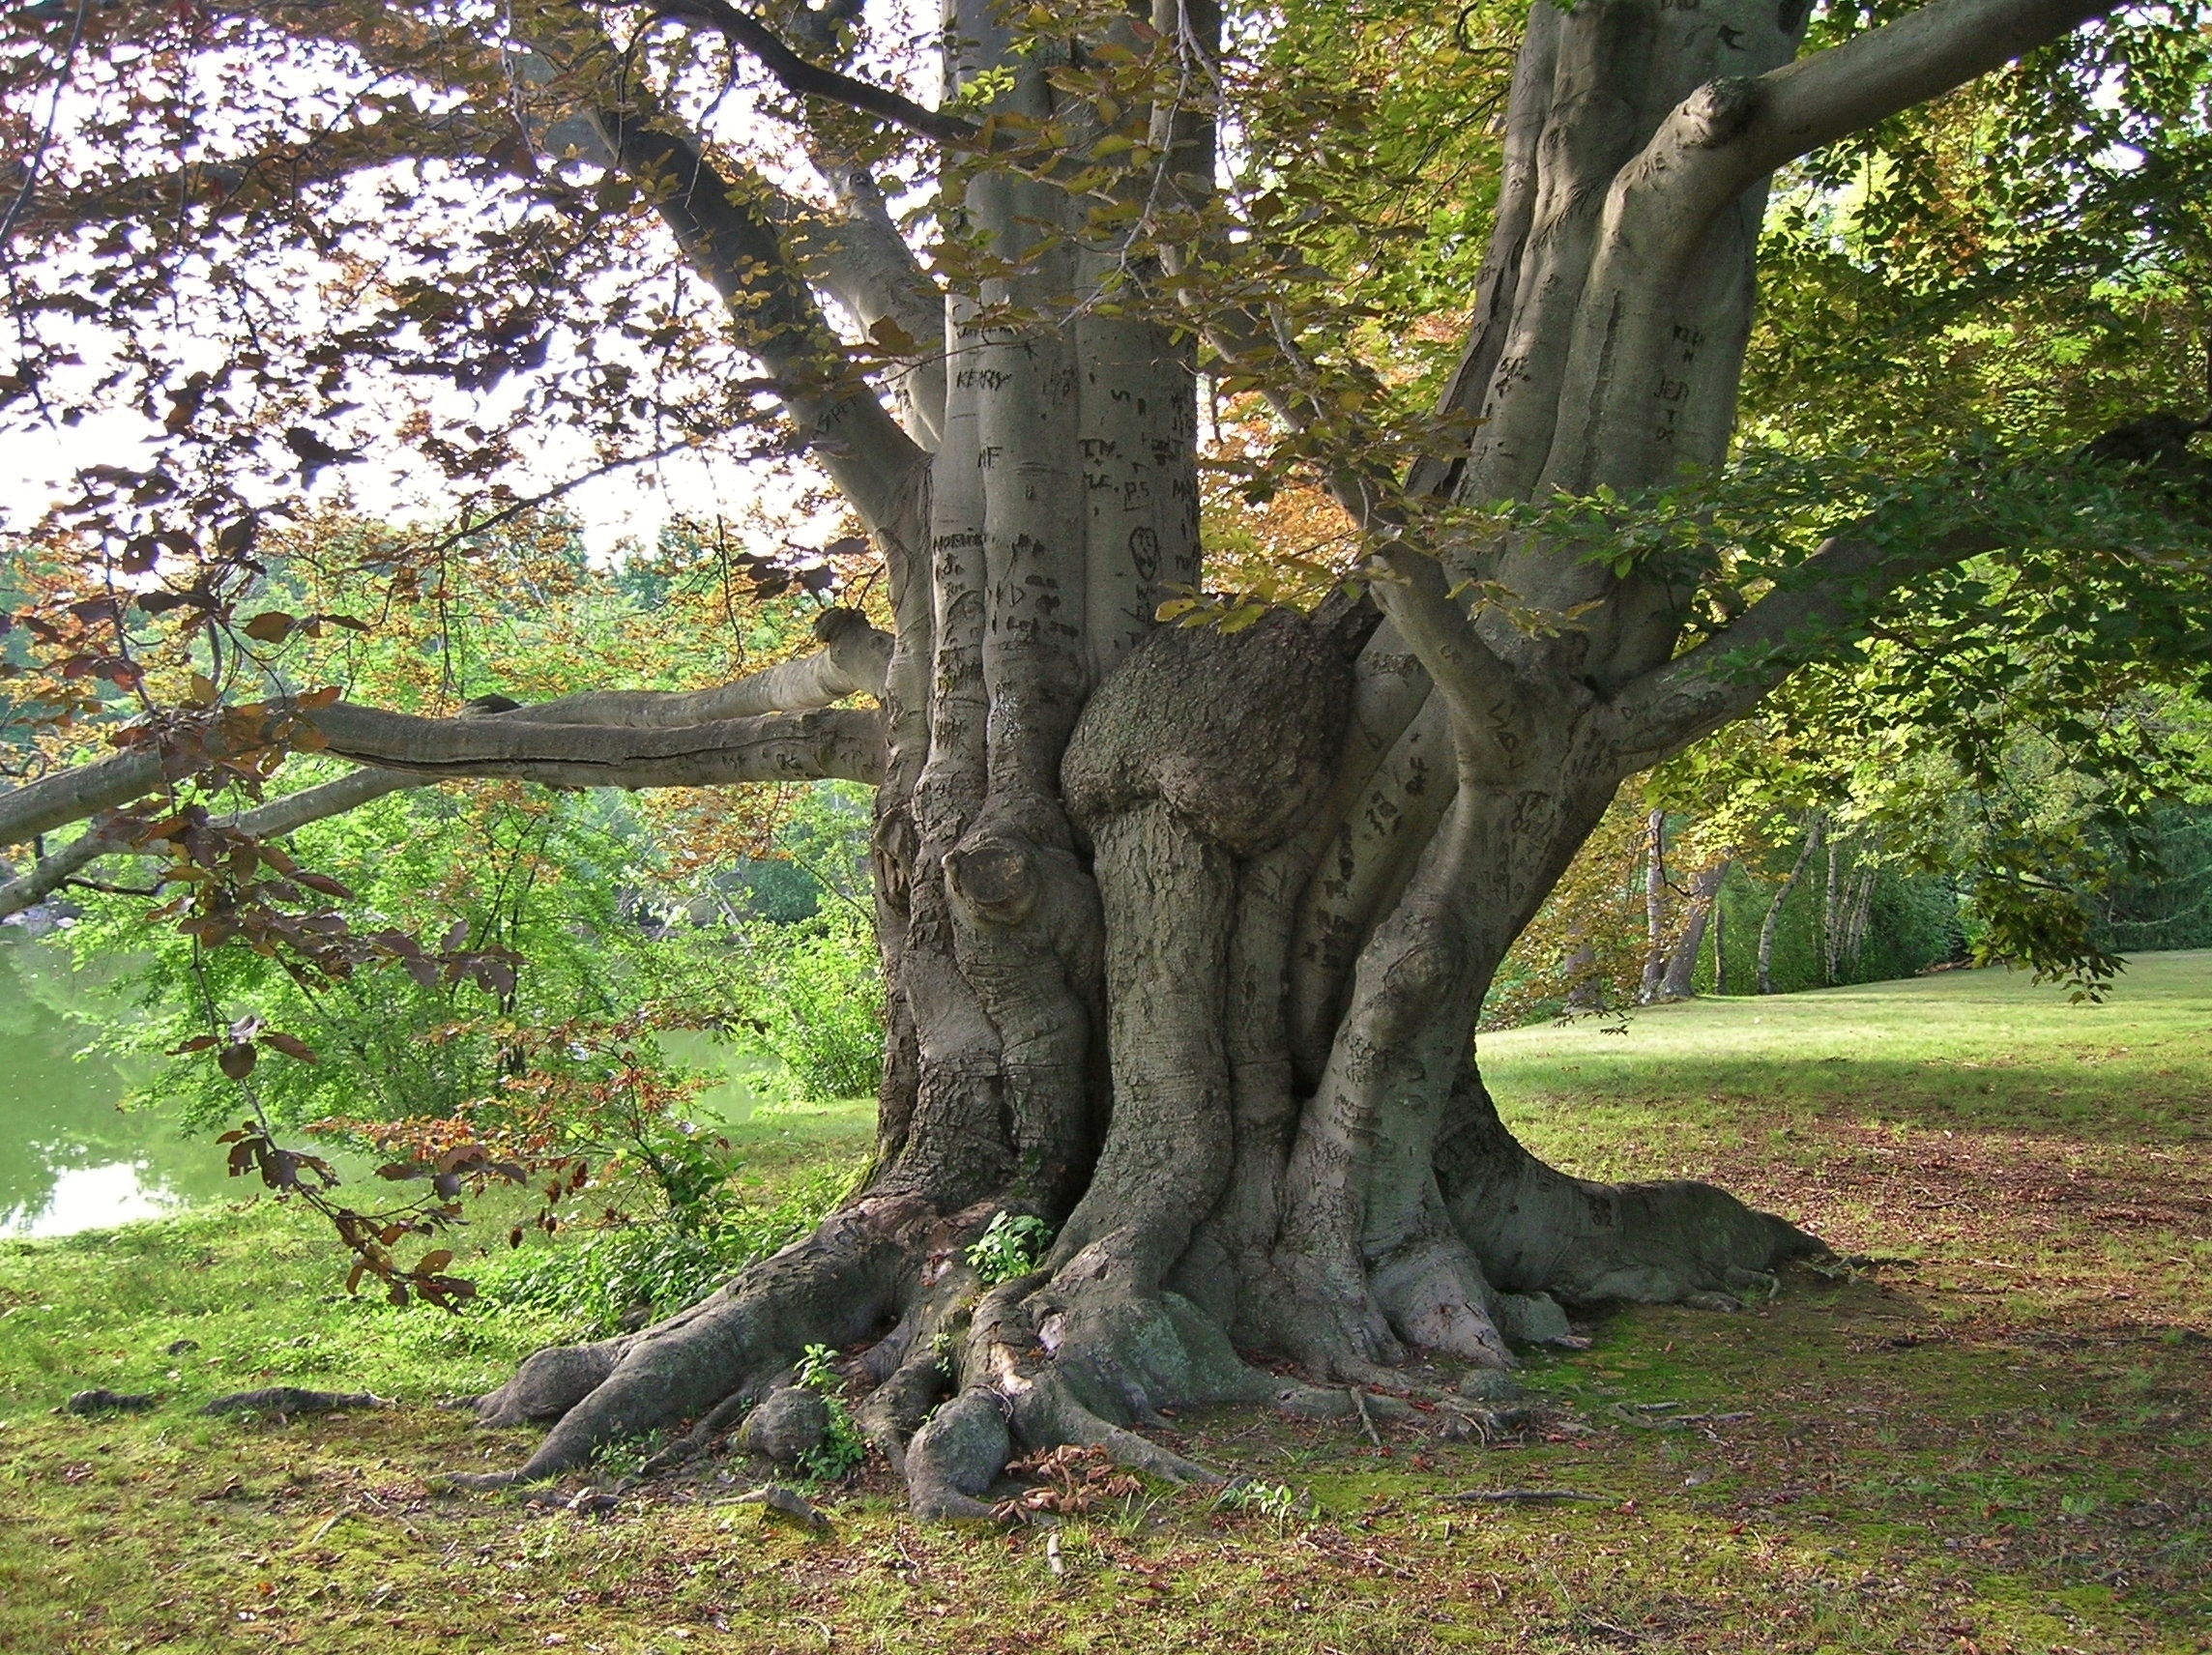 Beech wood is an ideal candidate for firewood